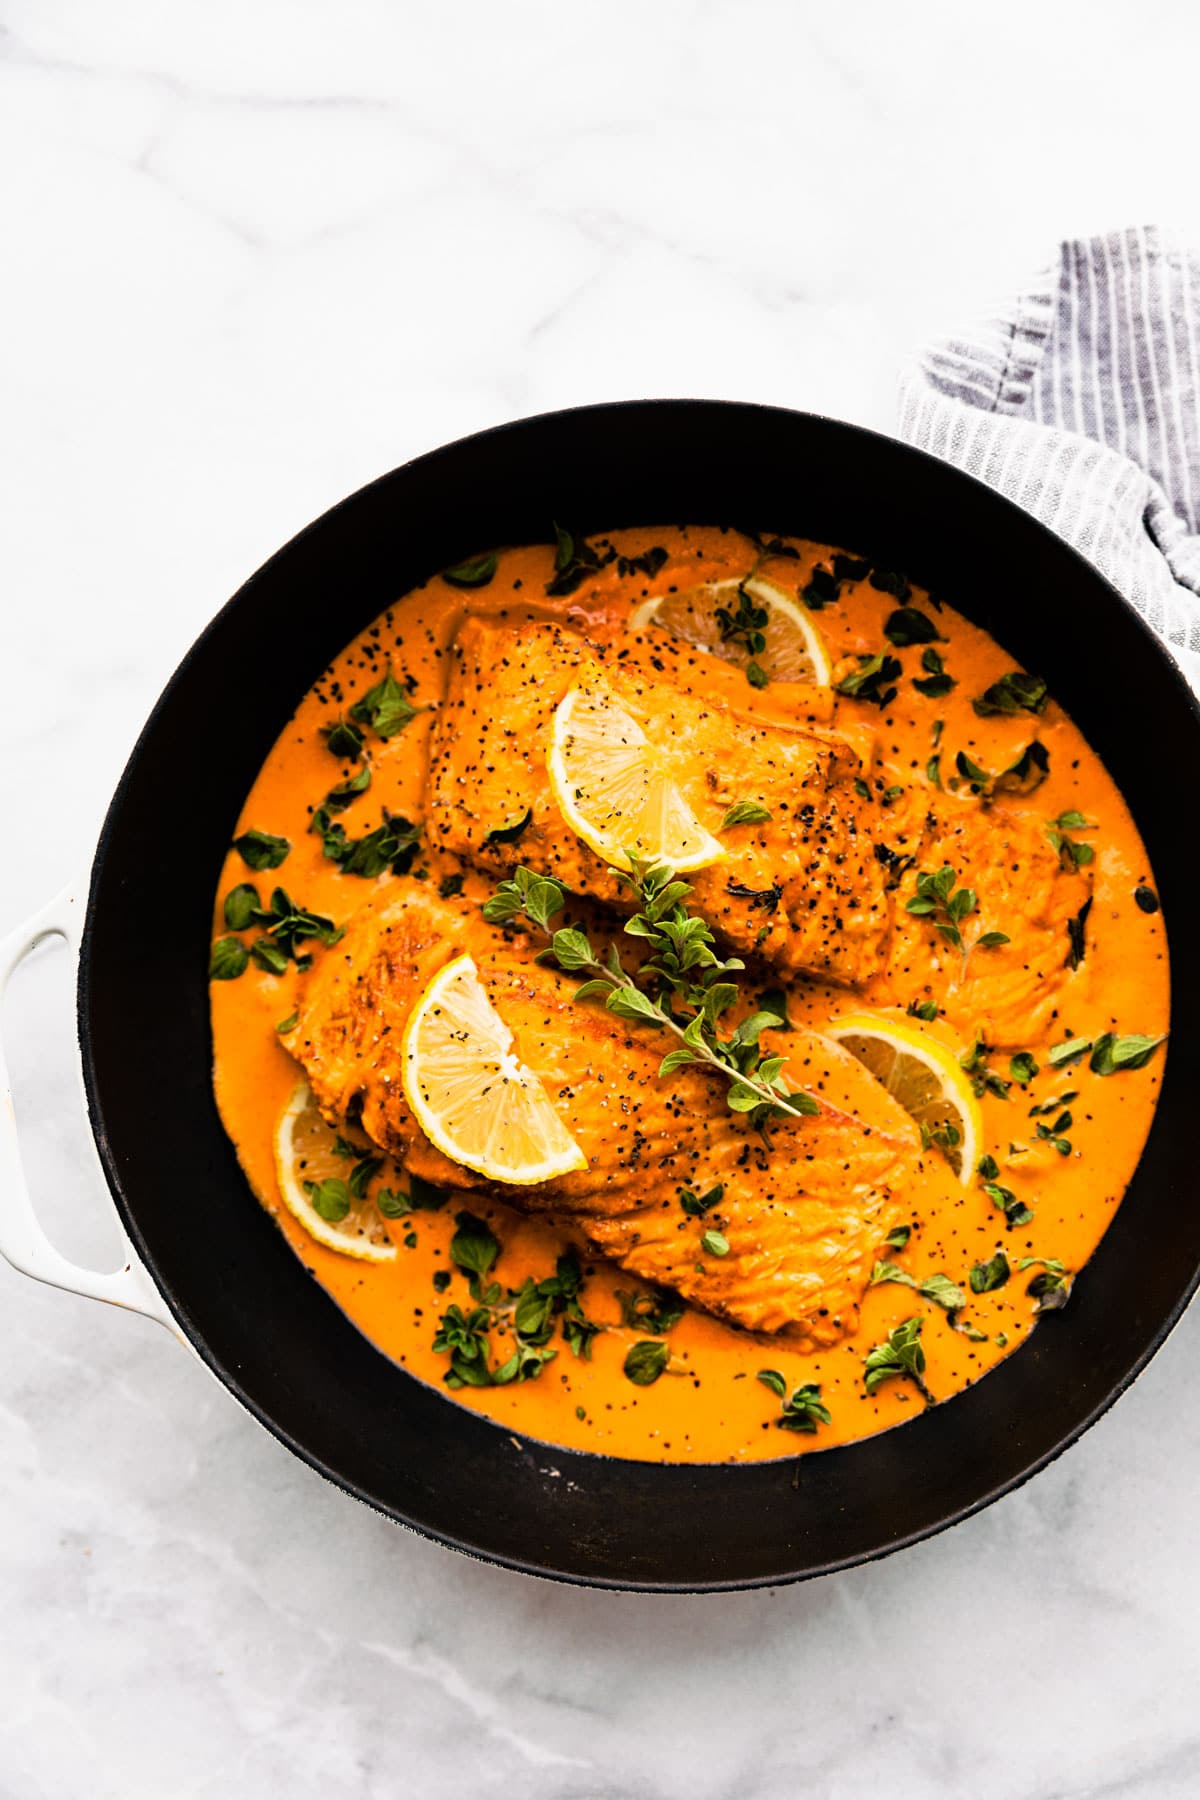 Baked salmon with Red Pepper Sauce